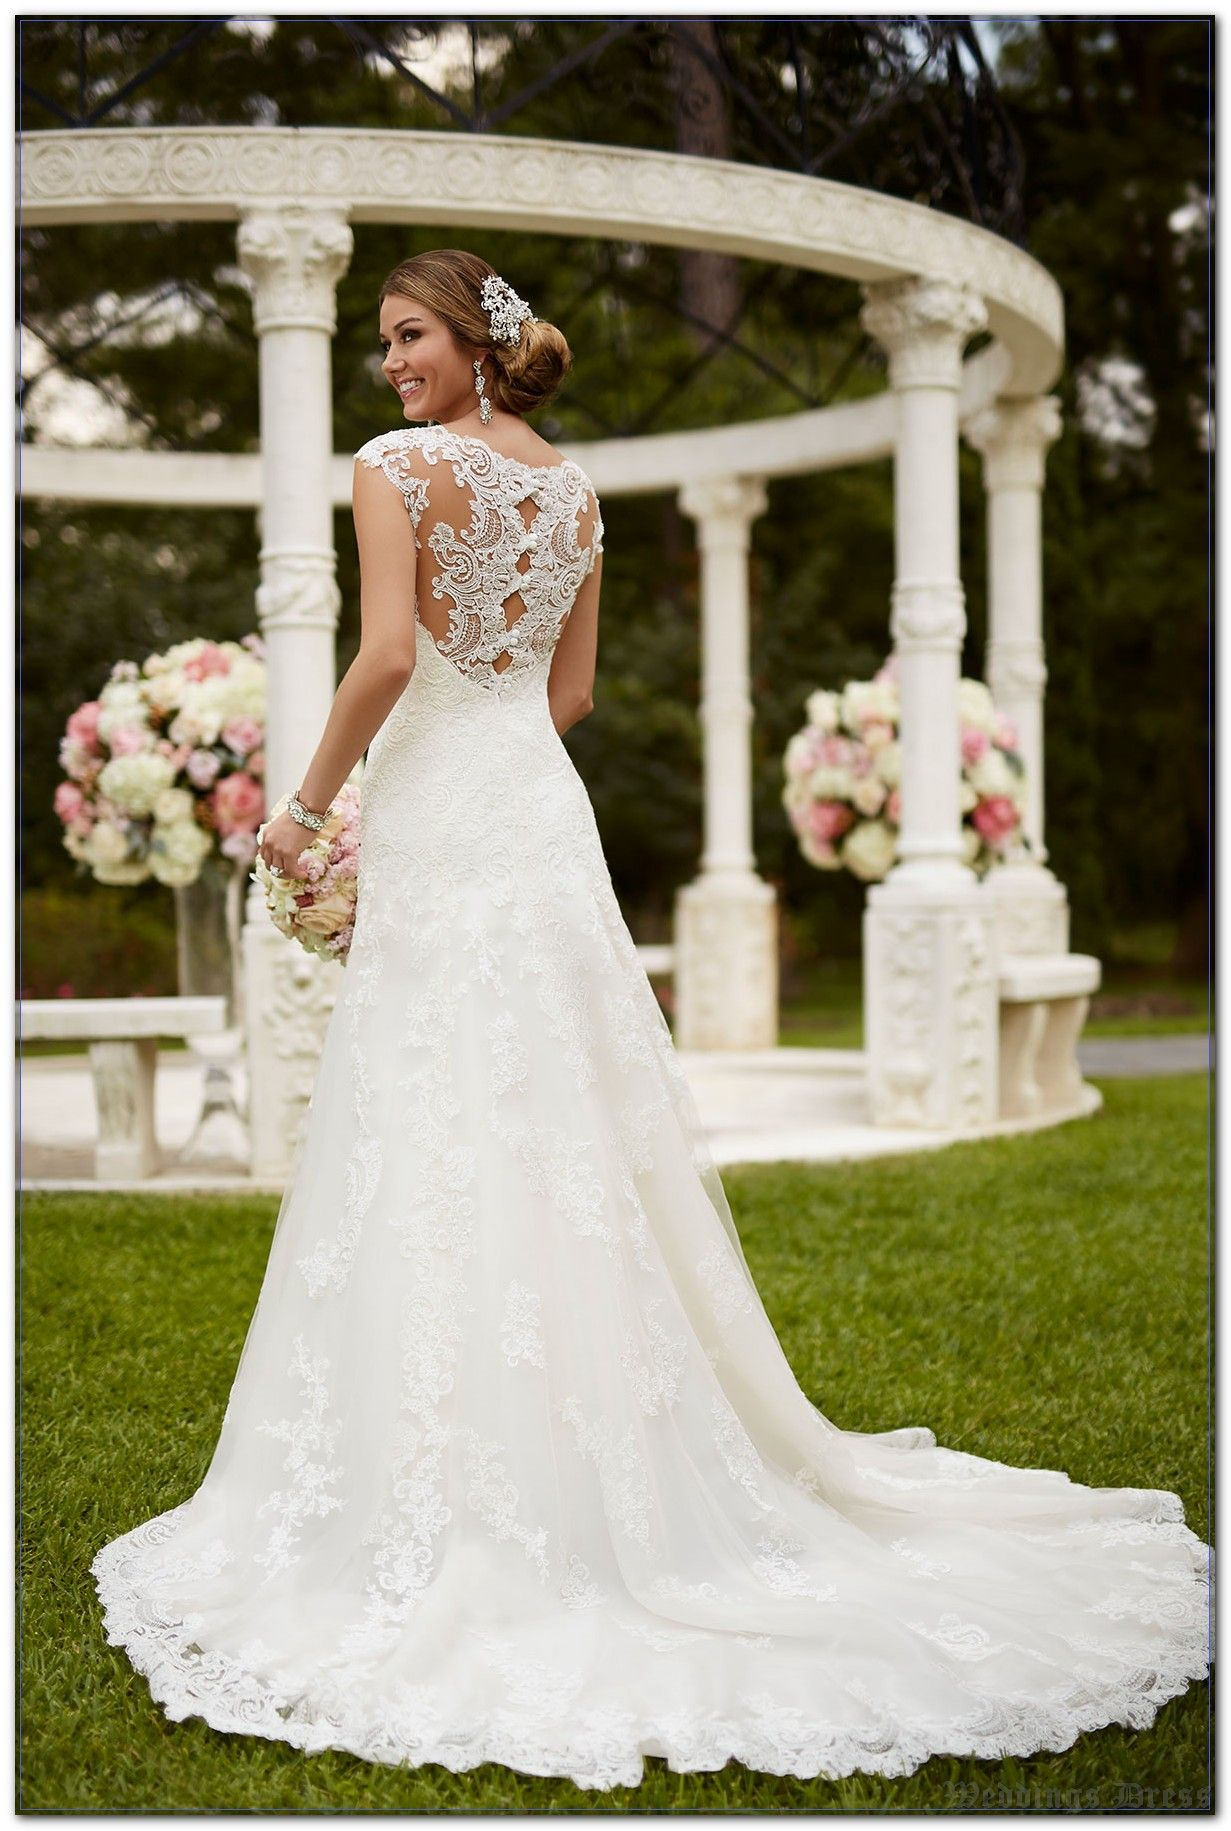 How To Turn Weddings Dress Into Success